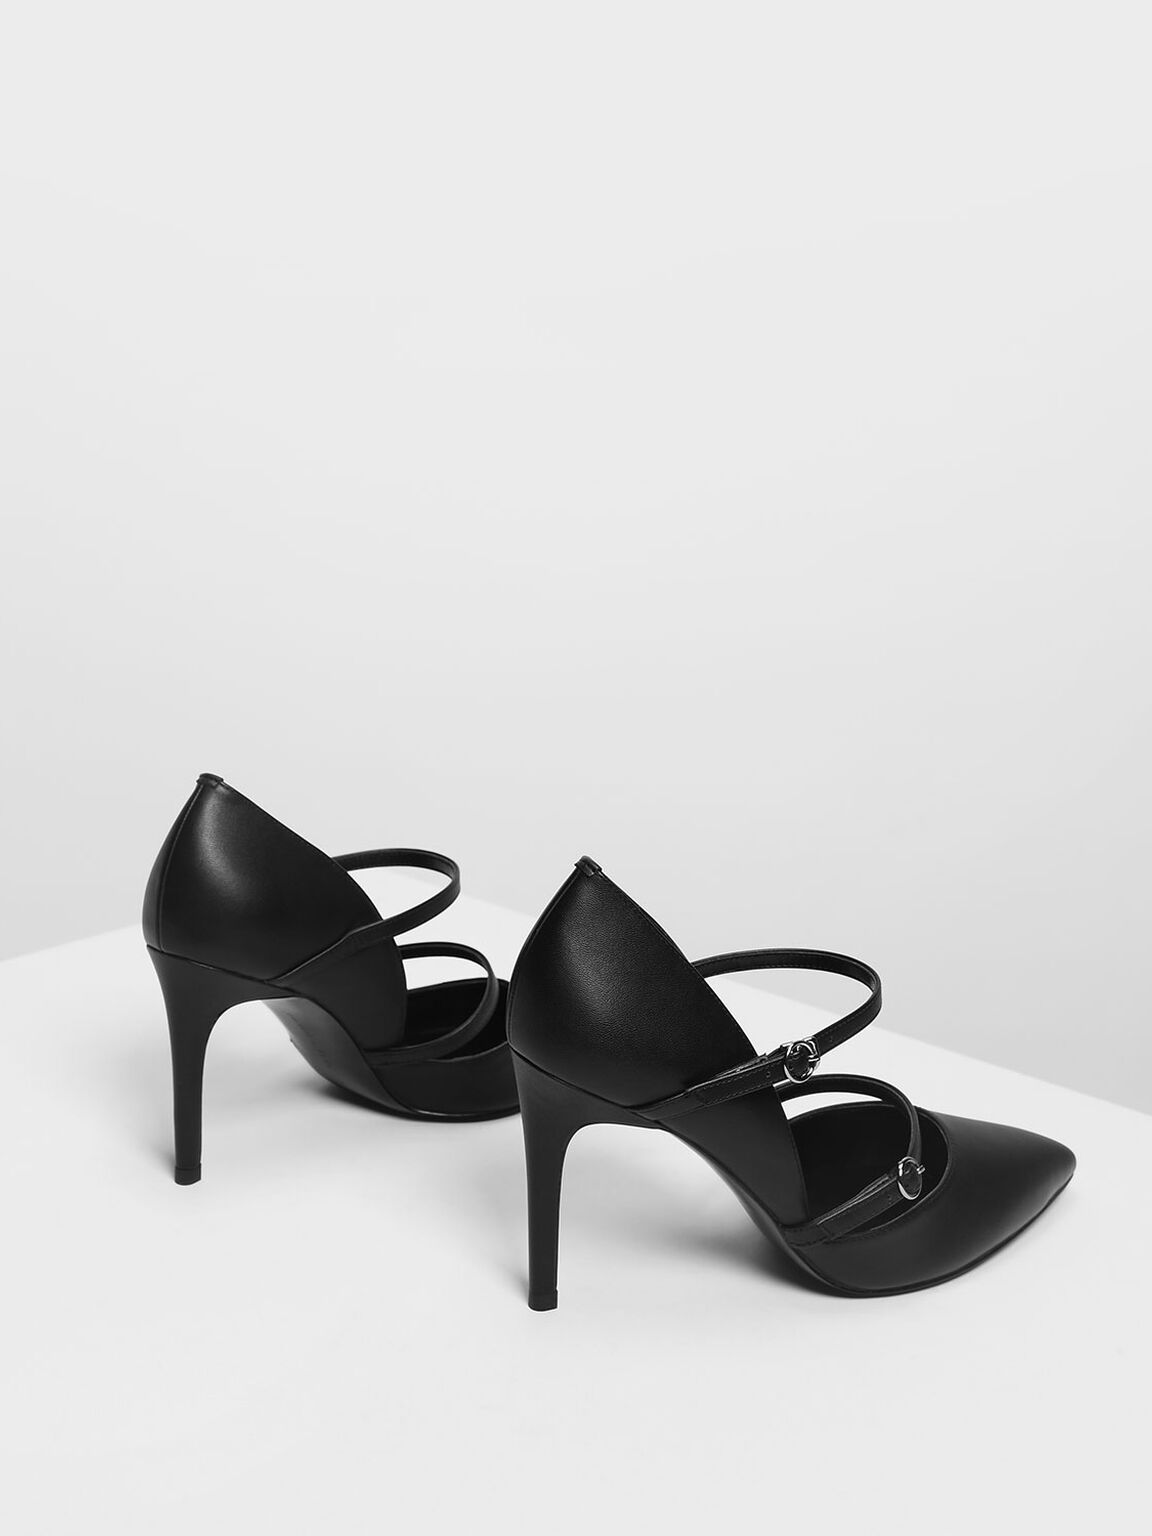 Double Strap Mary Jane Heels, Black, hi-res